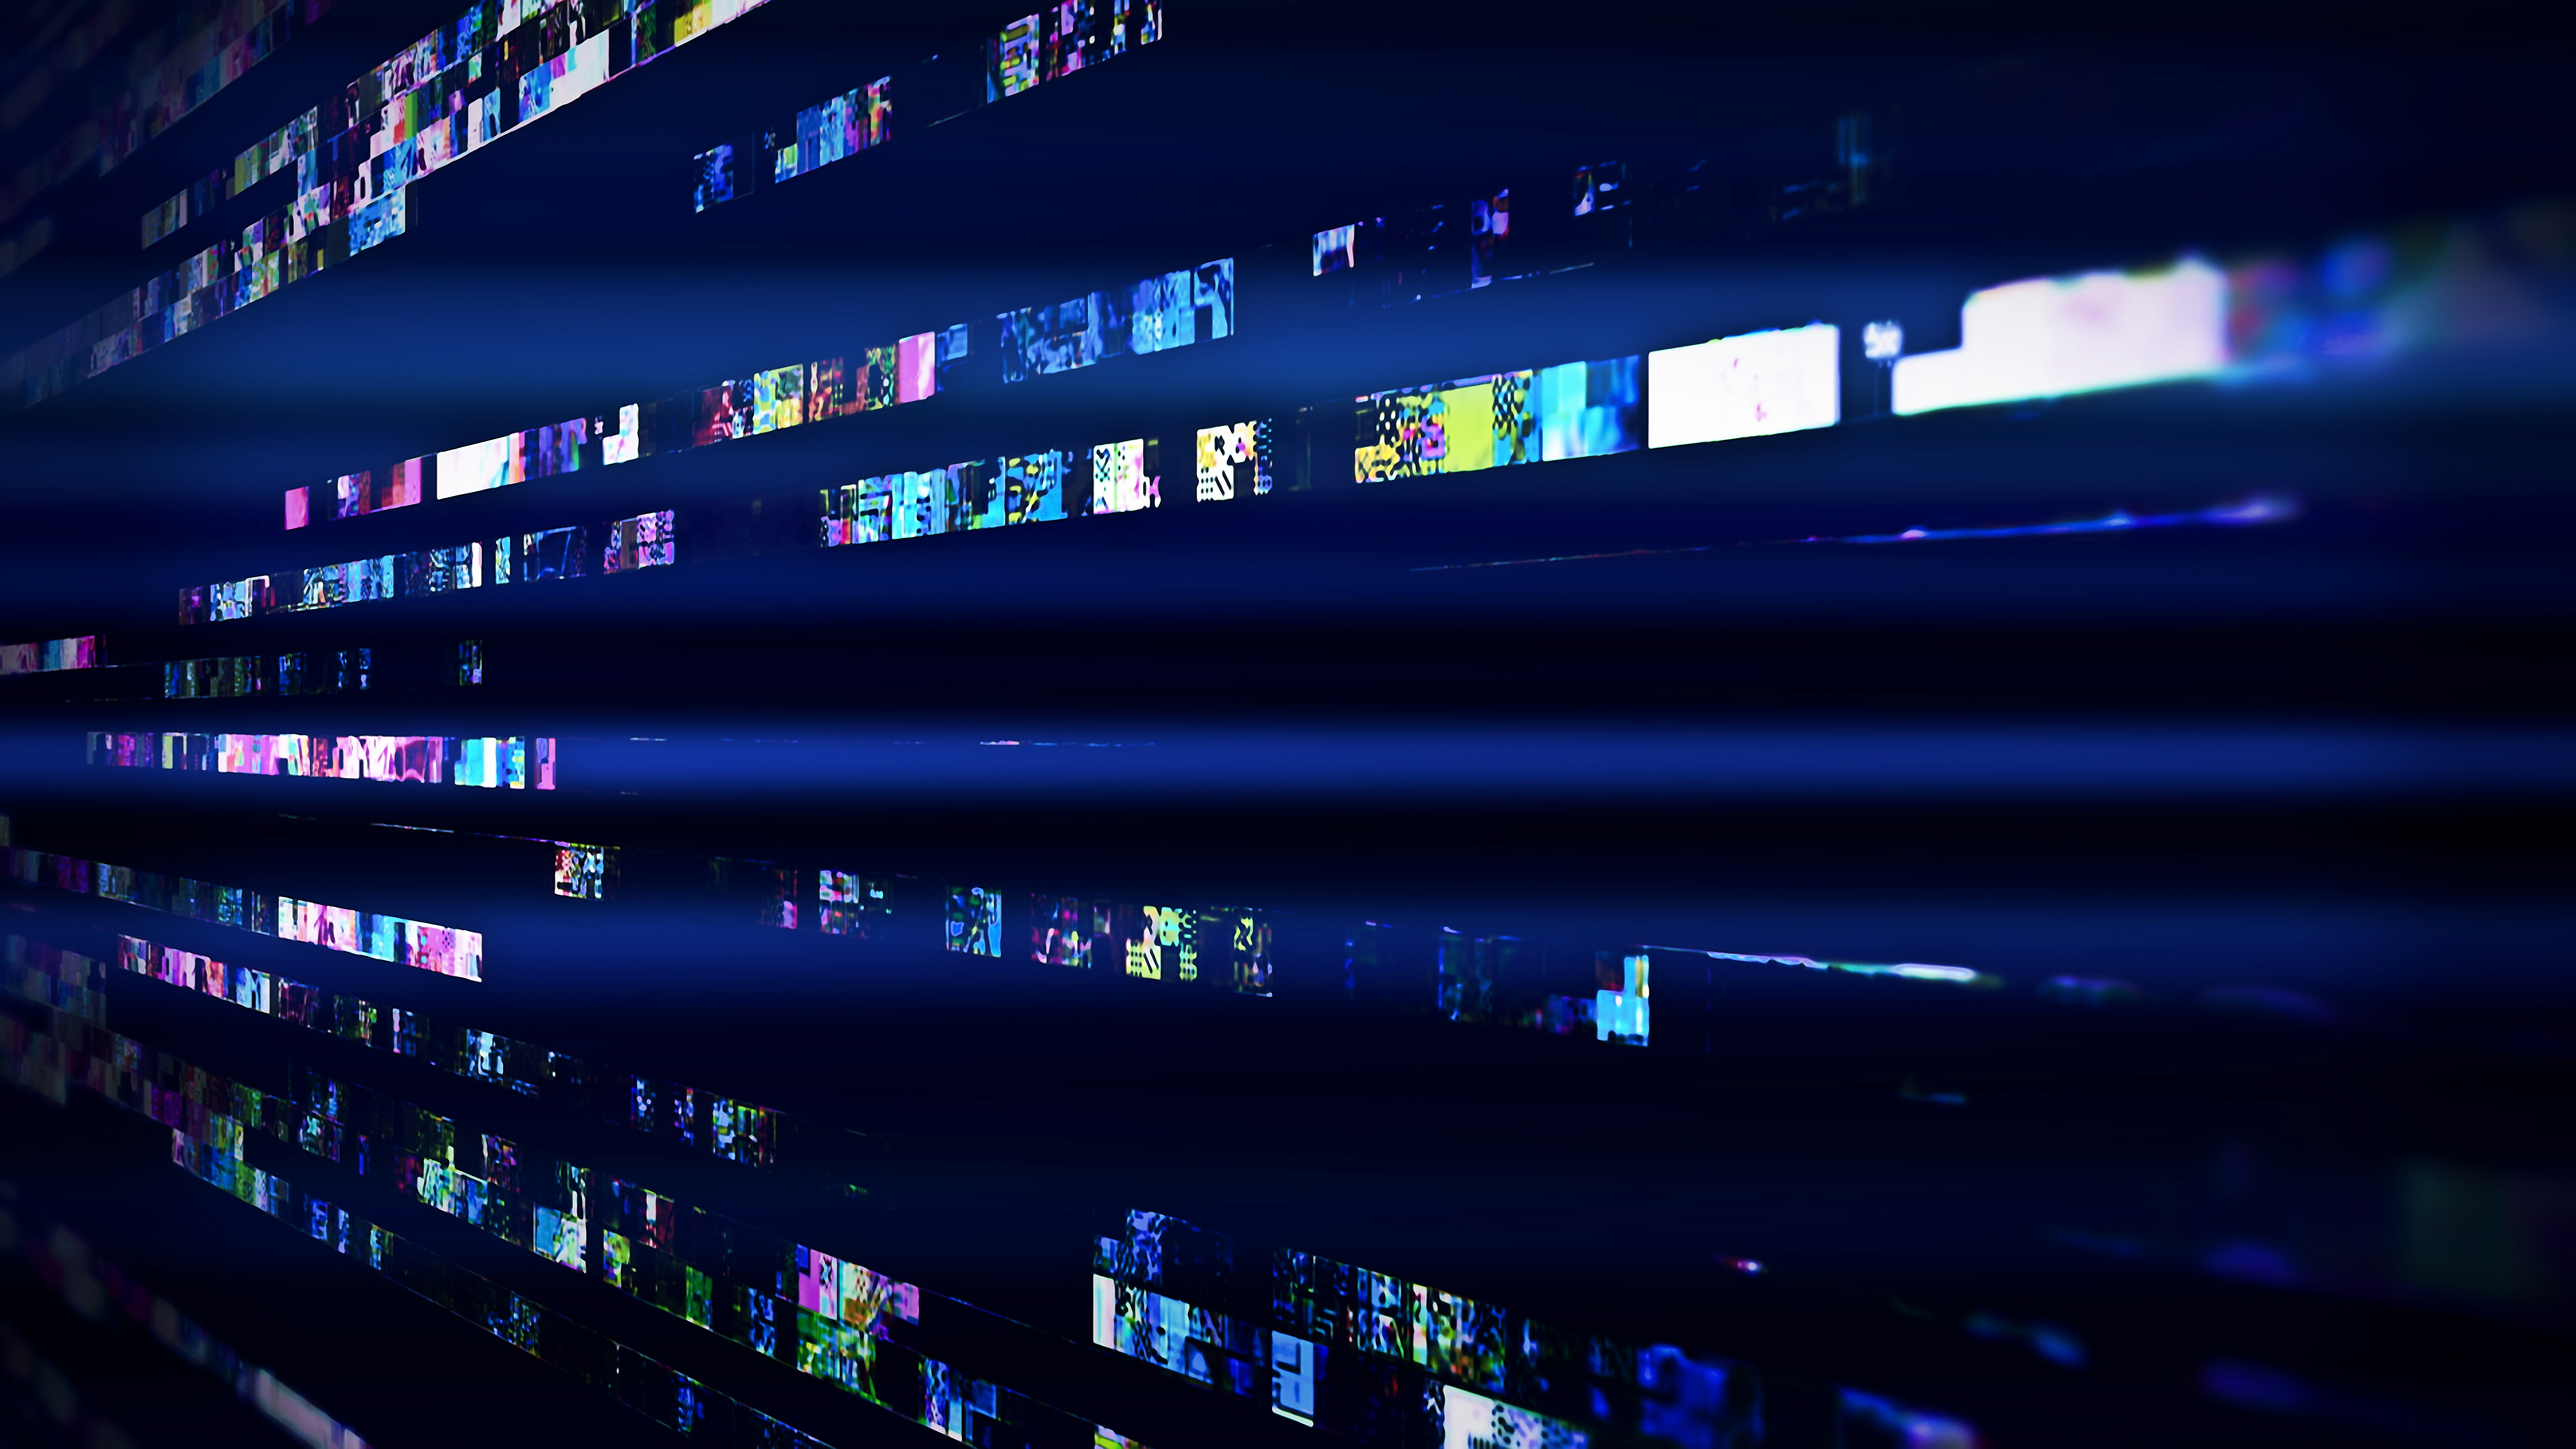 How do OTT providers battle for shelf space on operator set-tops?